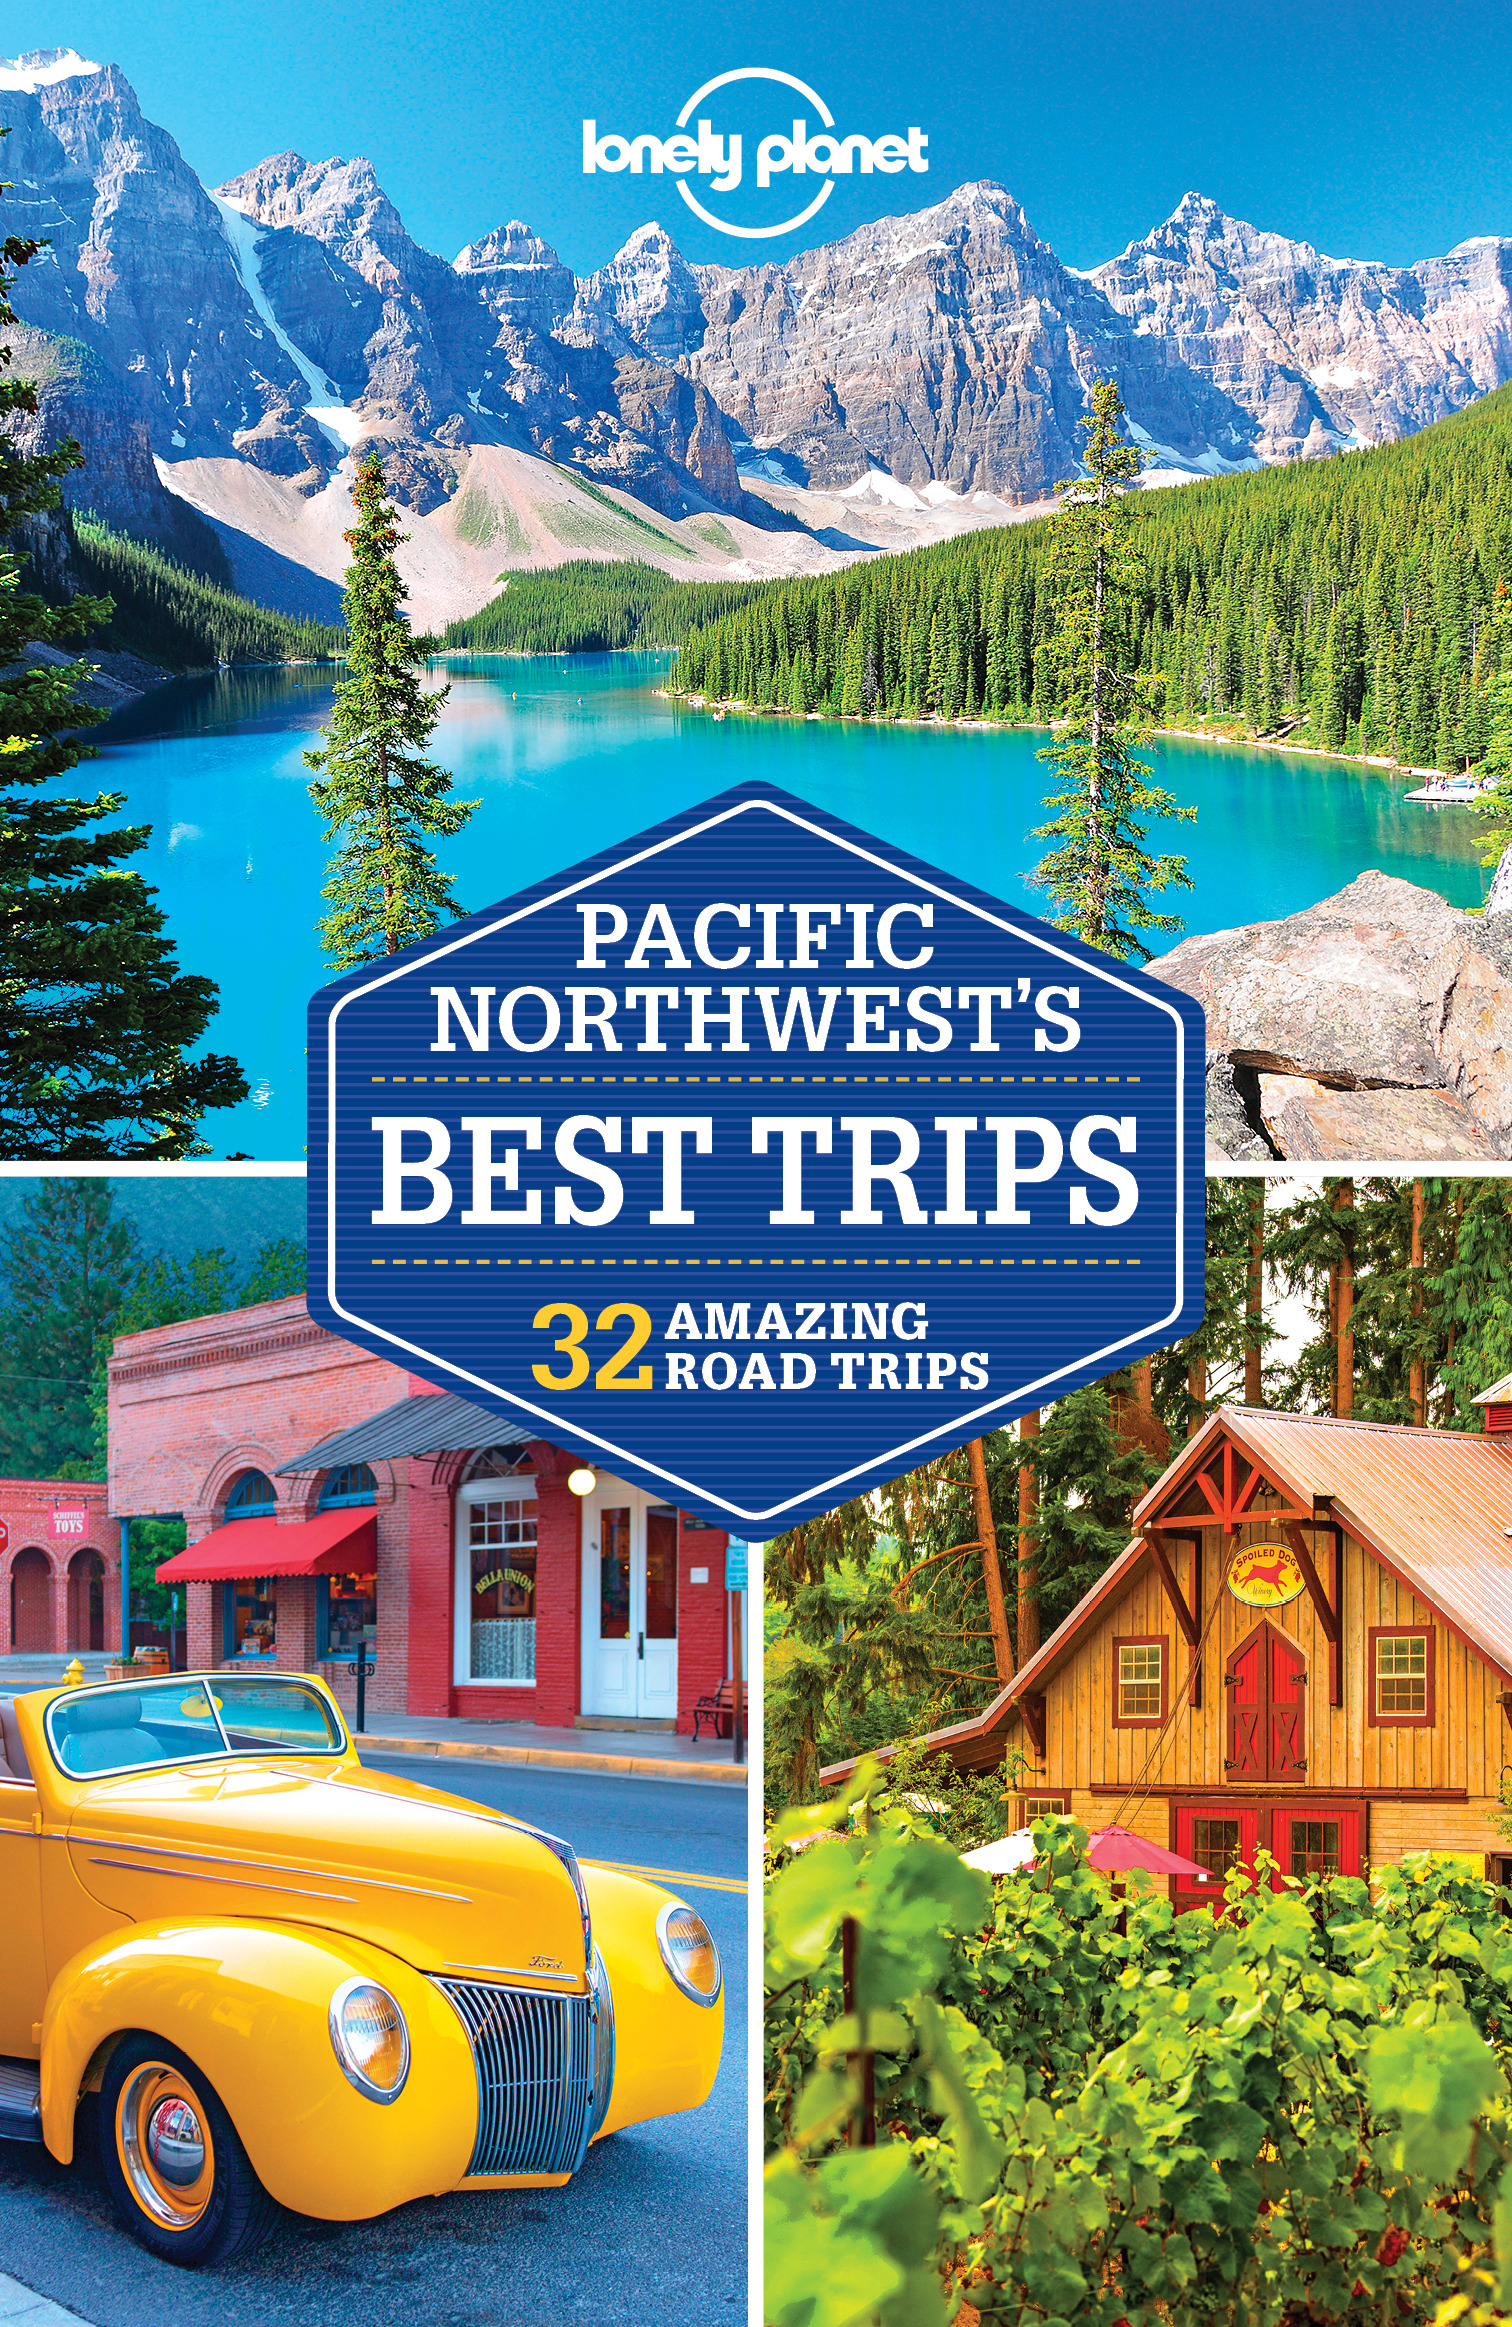 Berkmoes, Ryan Ver - Lonely Planet Pacific Northwest's Best Trips, e-bok